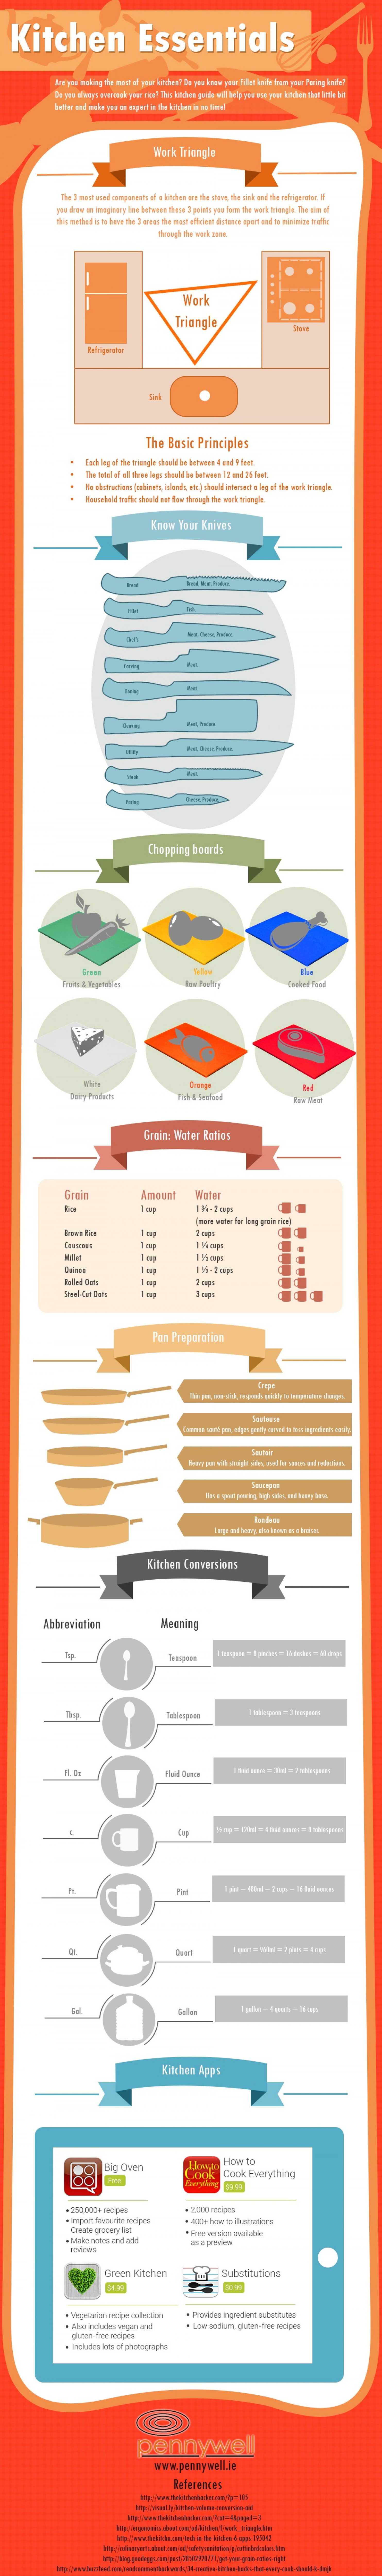 Know Your Kitchen with this Kitchen Essentials Infographic Infographic